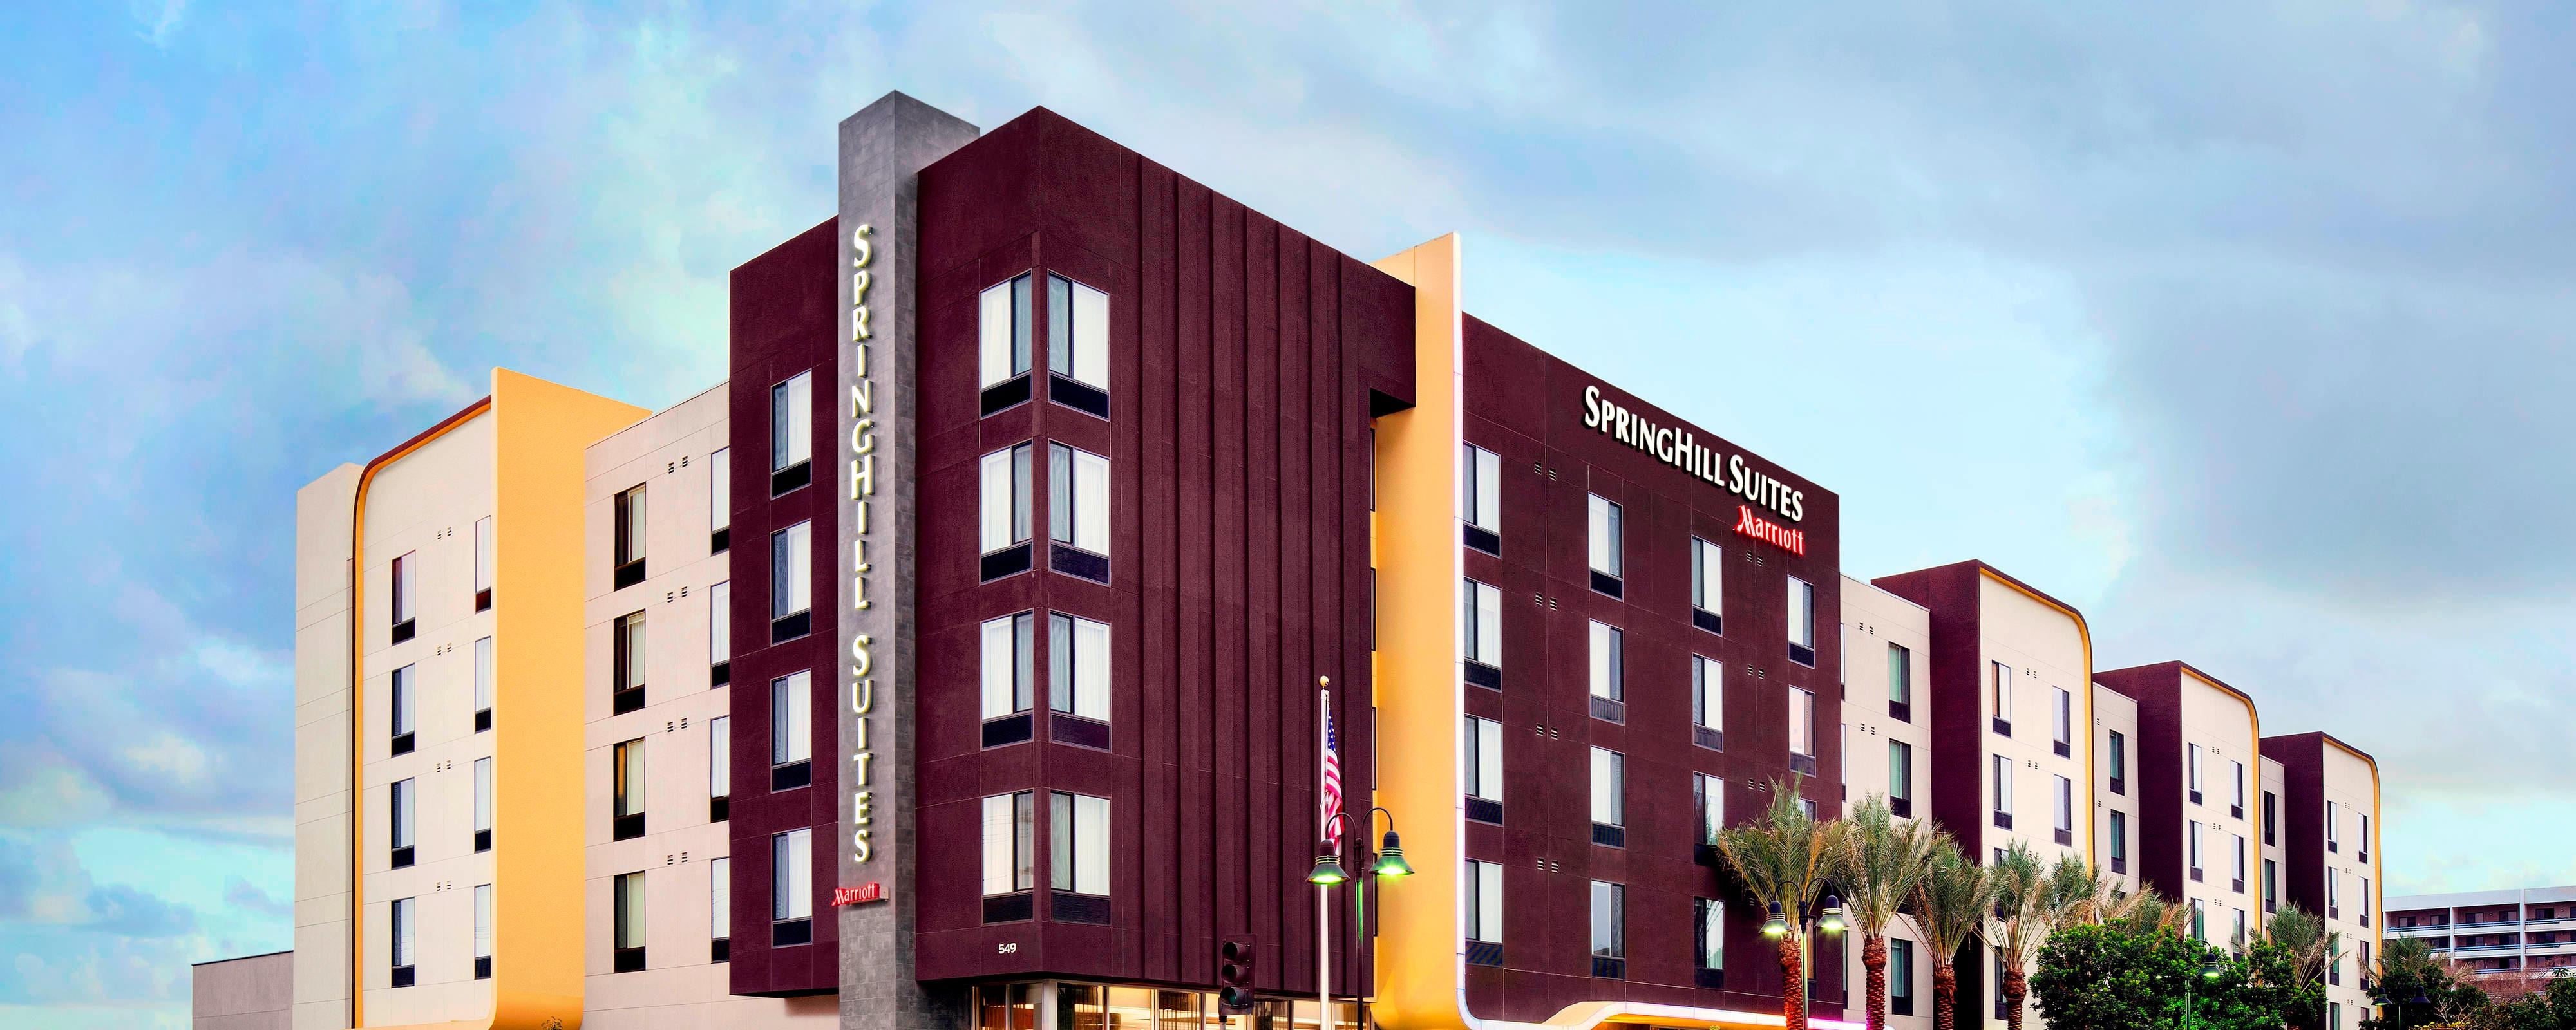 Hotel Suites Near Universal Studios Hollywood Springhill Suites